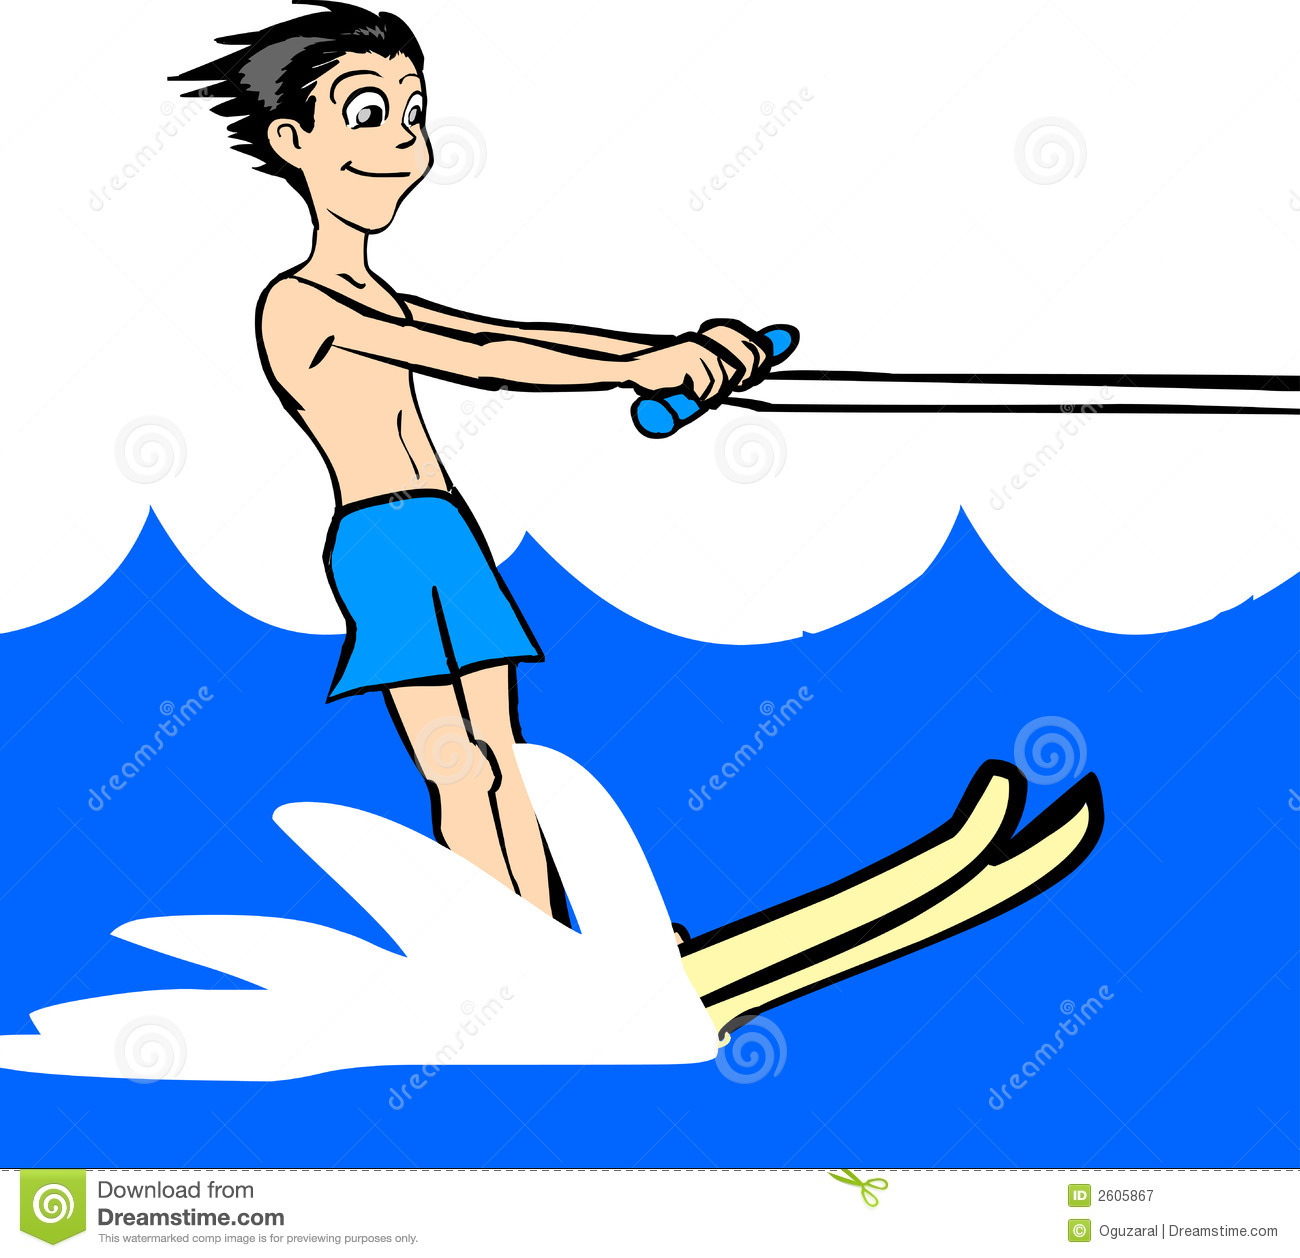 Water skiing clipart 4 » Clipart Station.